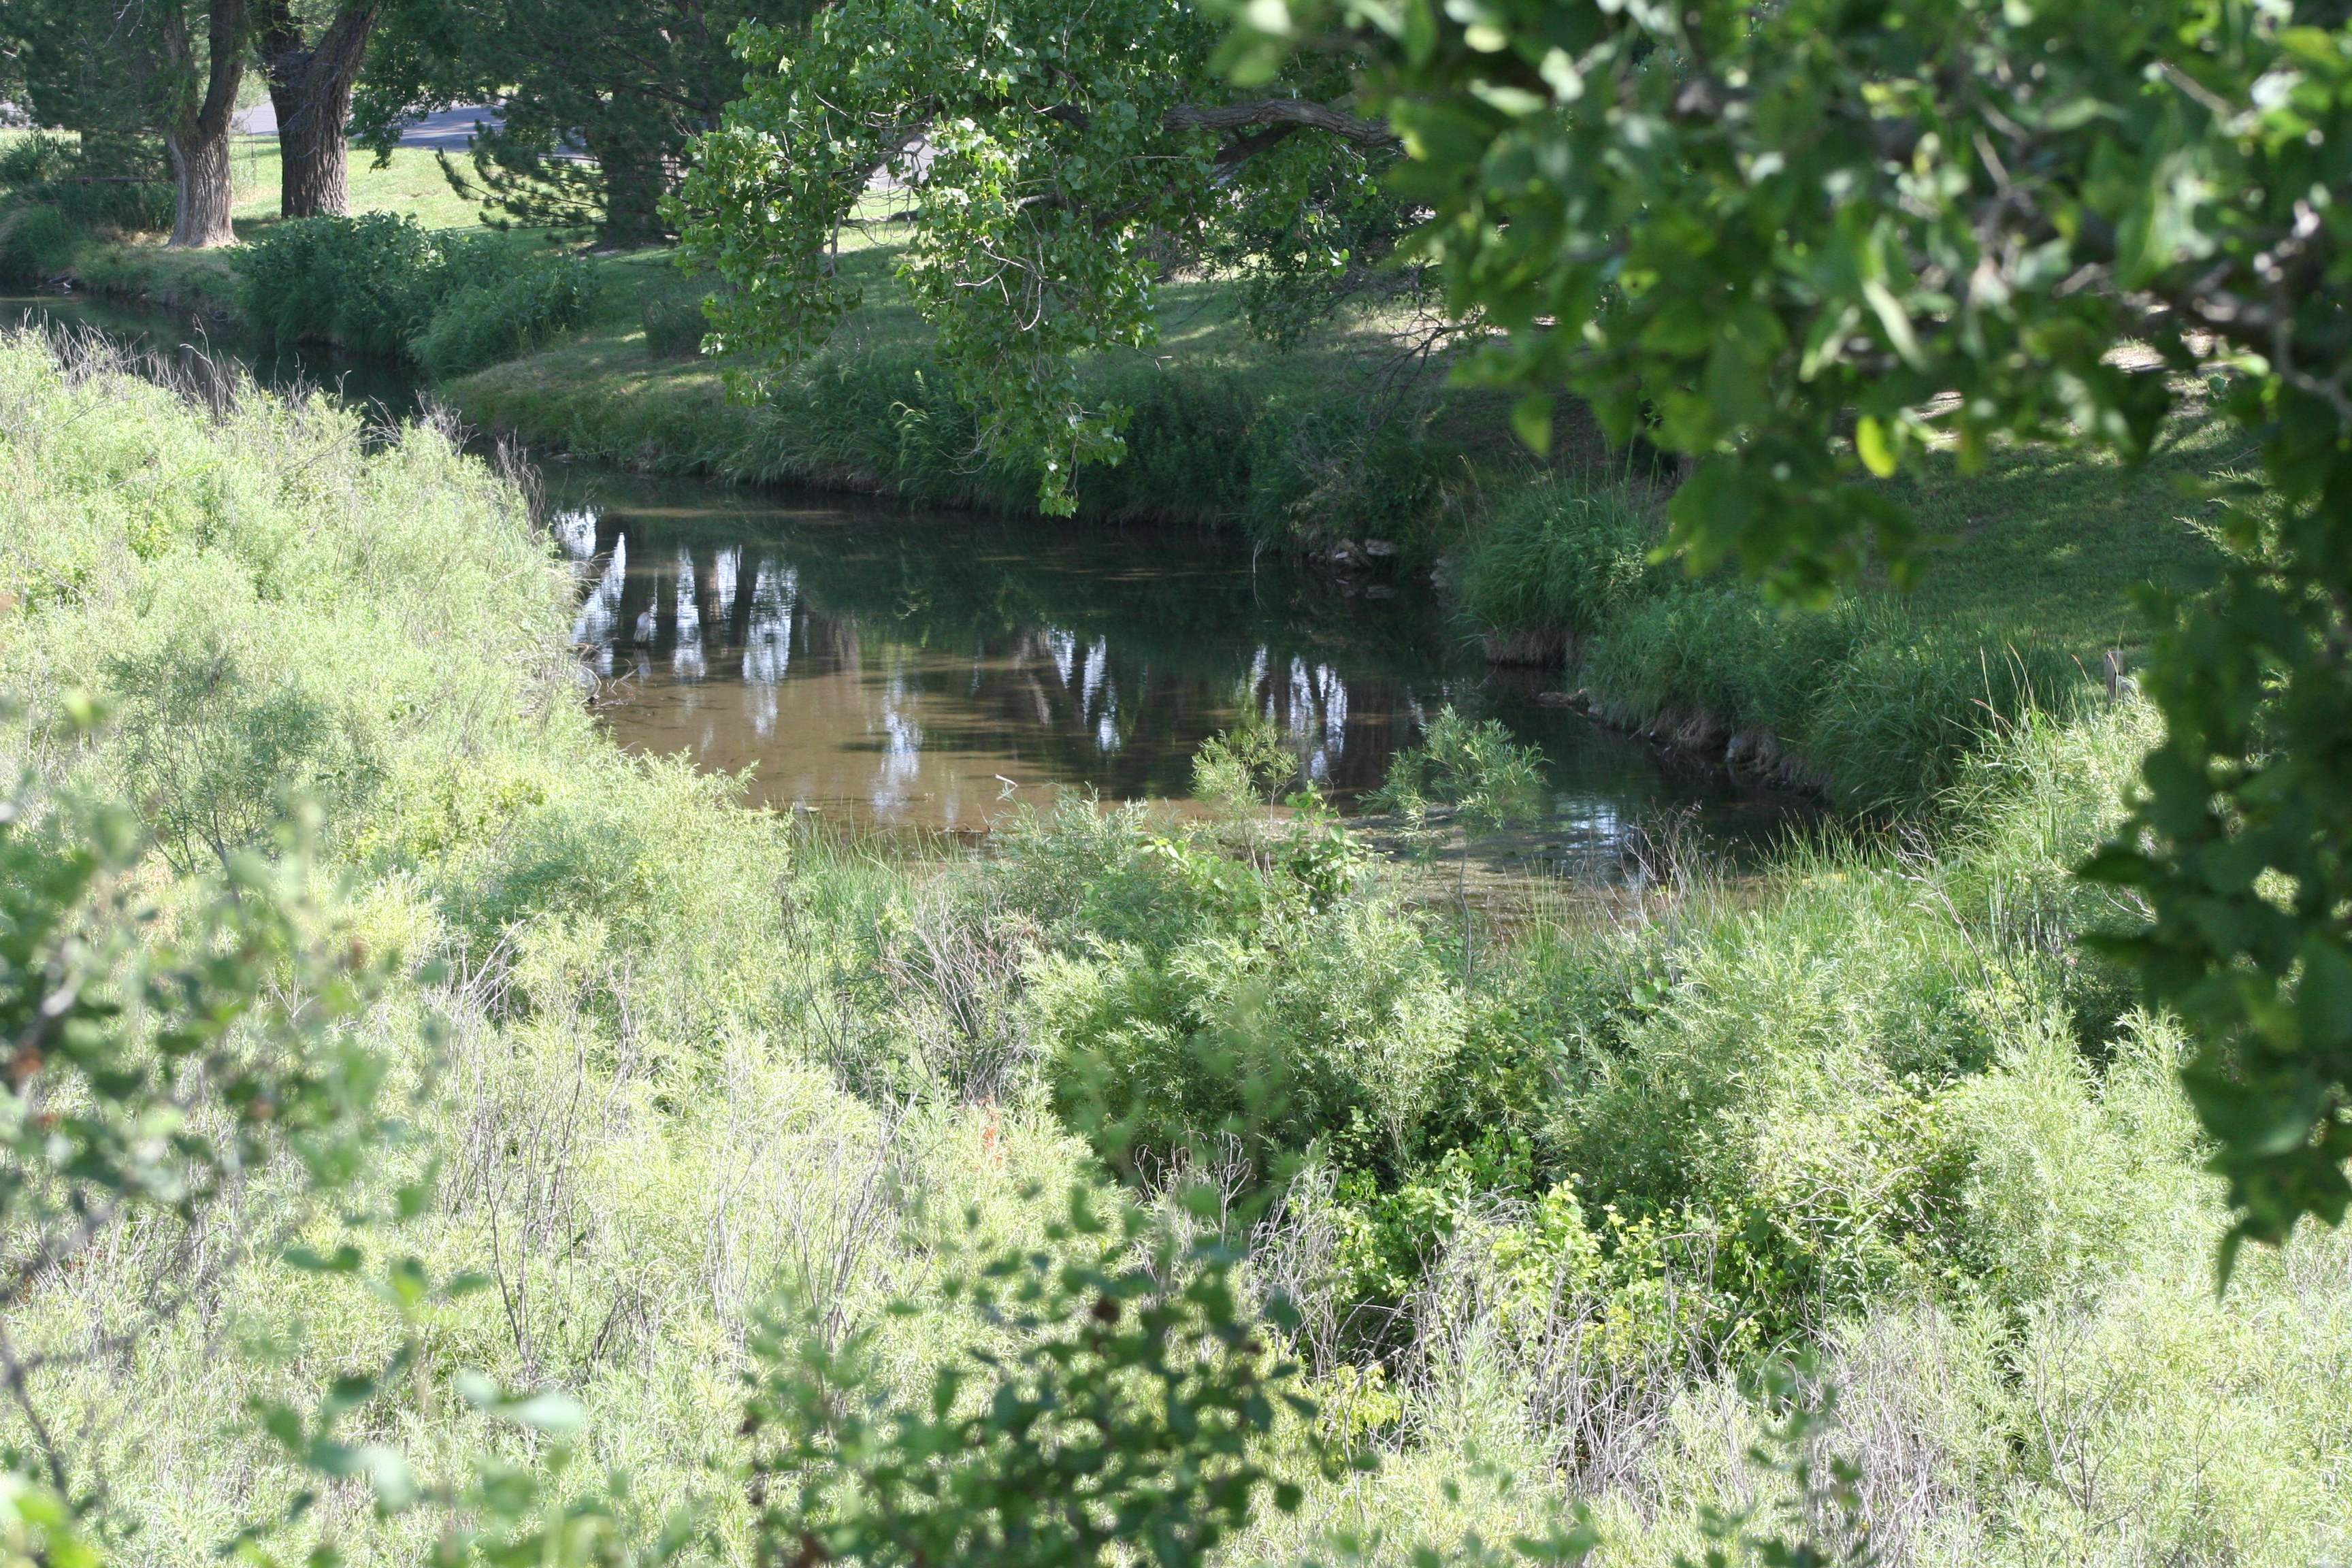 The spring fed pond from the nature trail above the bridge.